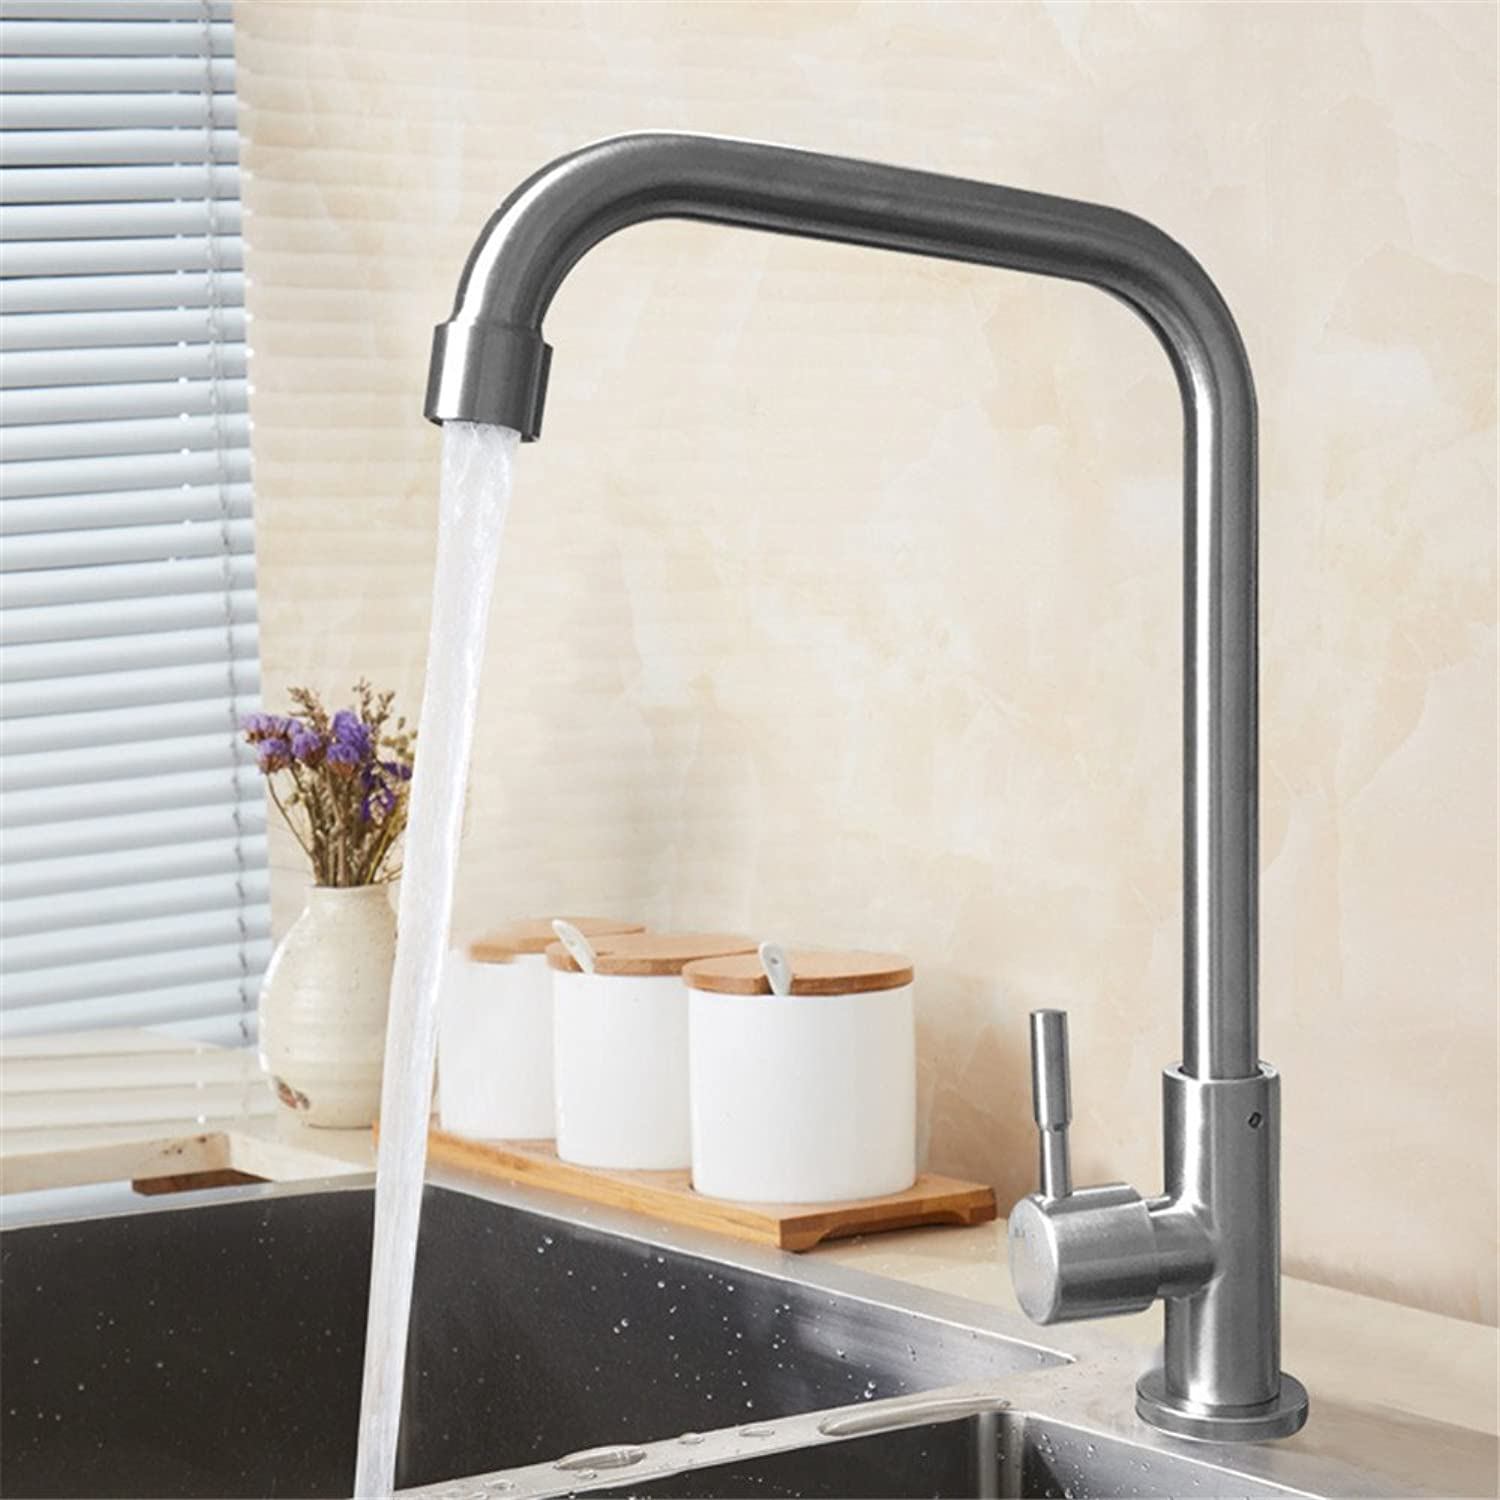 Shenhai Kitchen Faucet Wash Basin redating Sink Dishwasher Faucet, Single Hole Right Angle